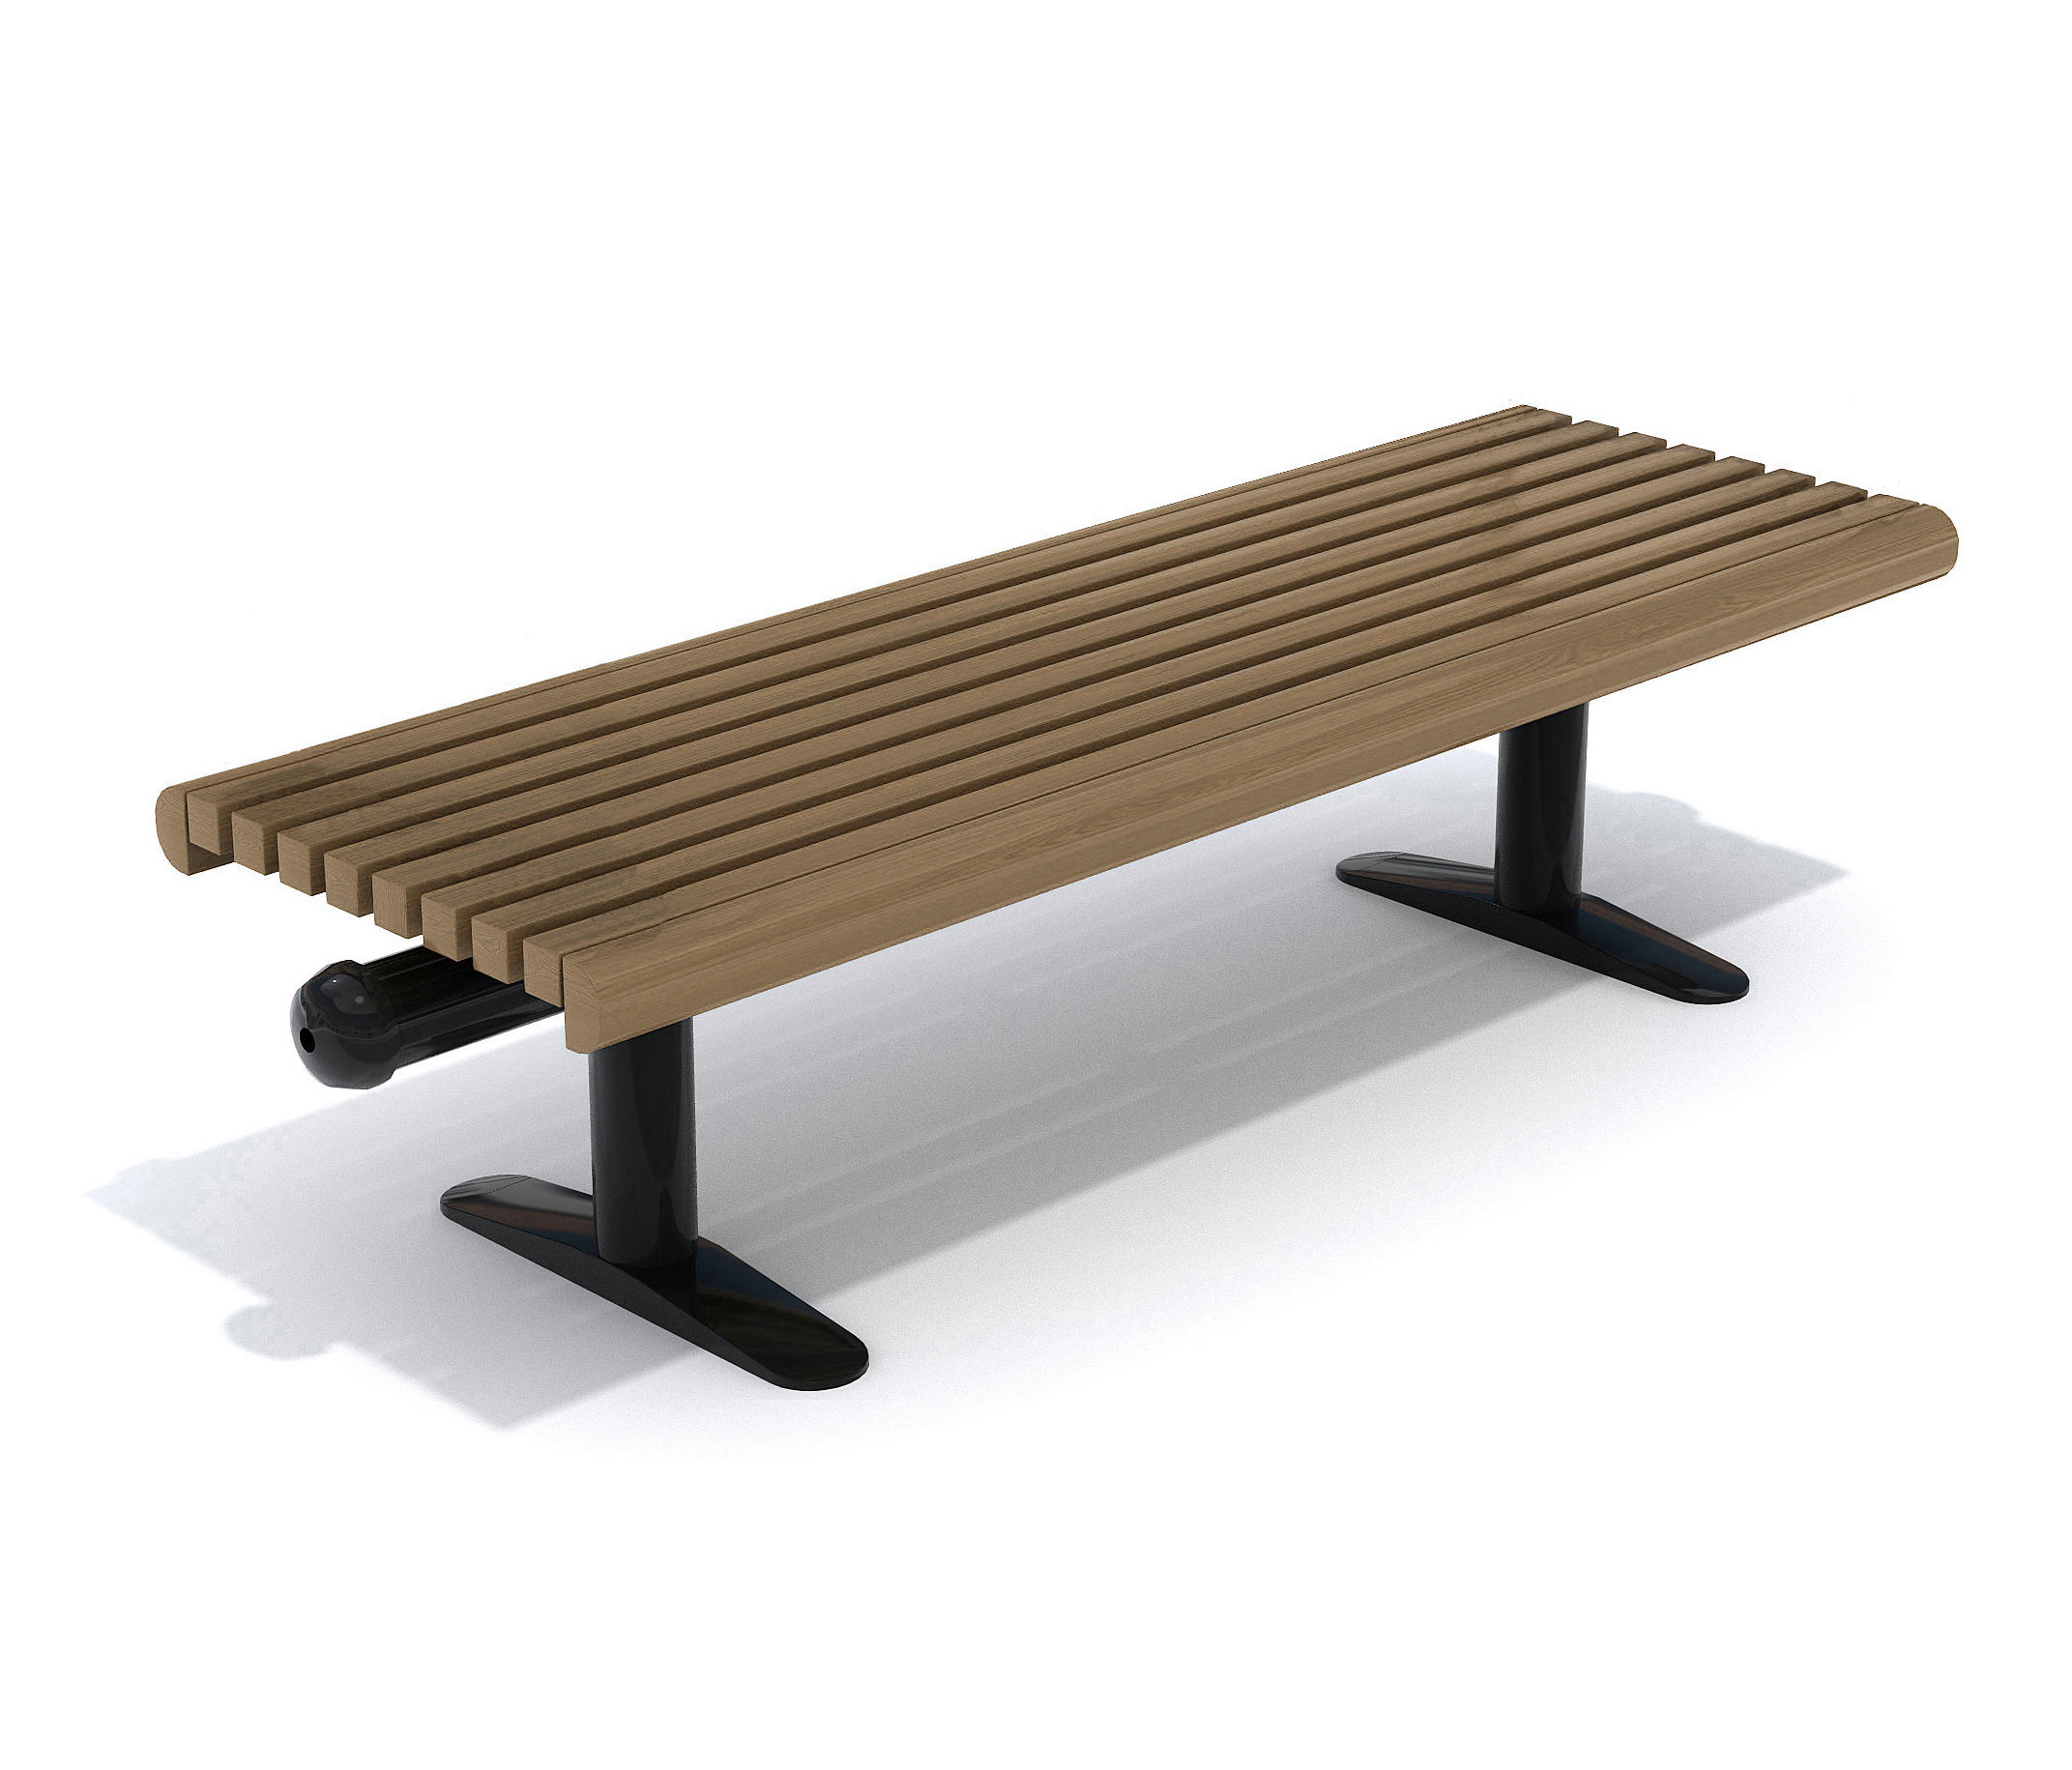 CITY FORM | BENCH - Exterior benches from Hags | Architonic